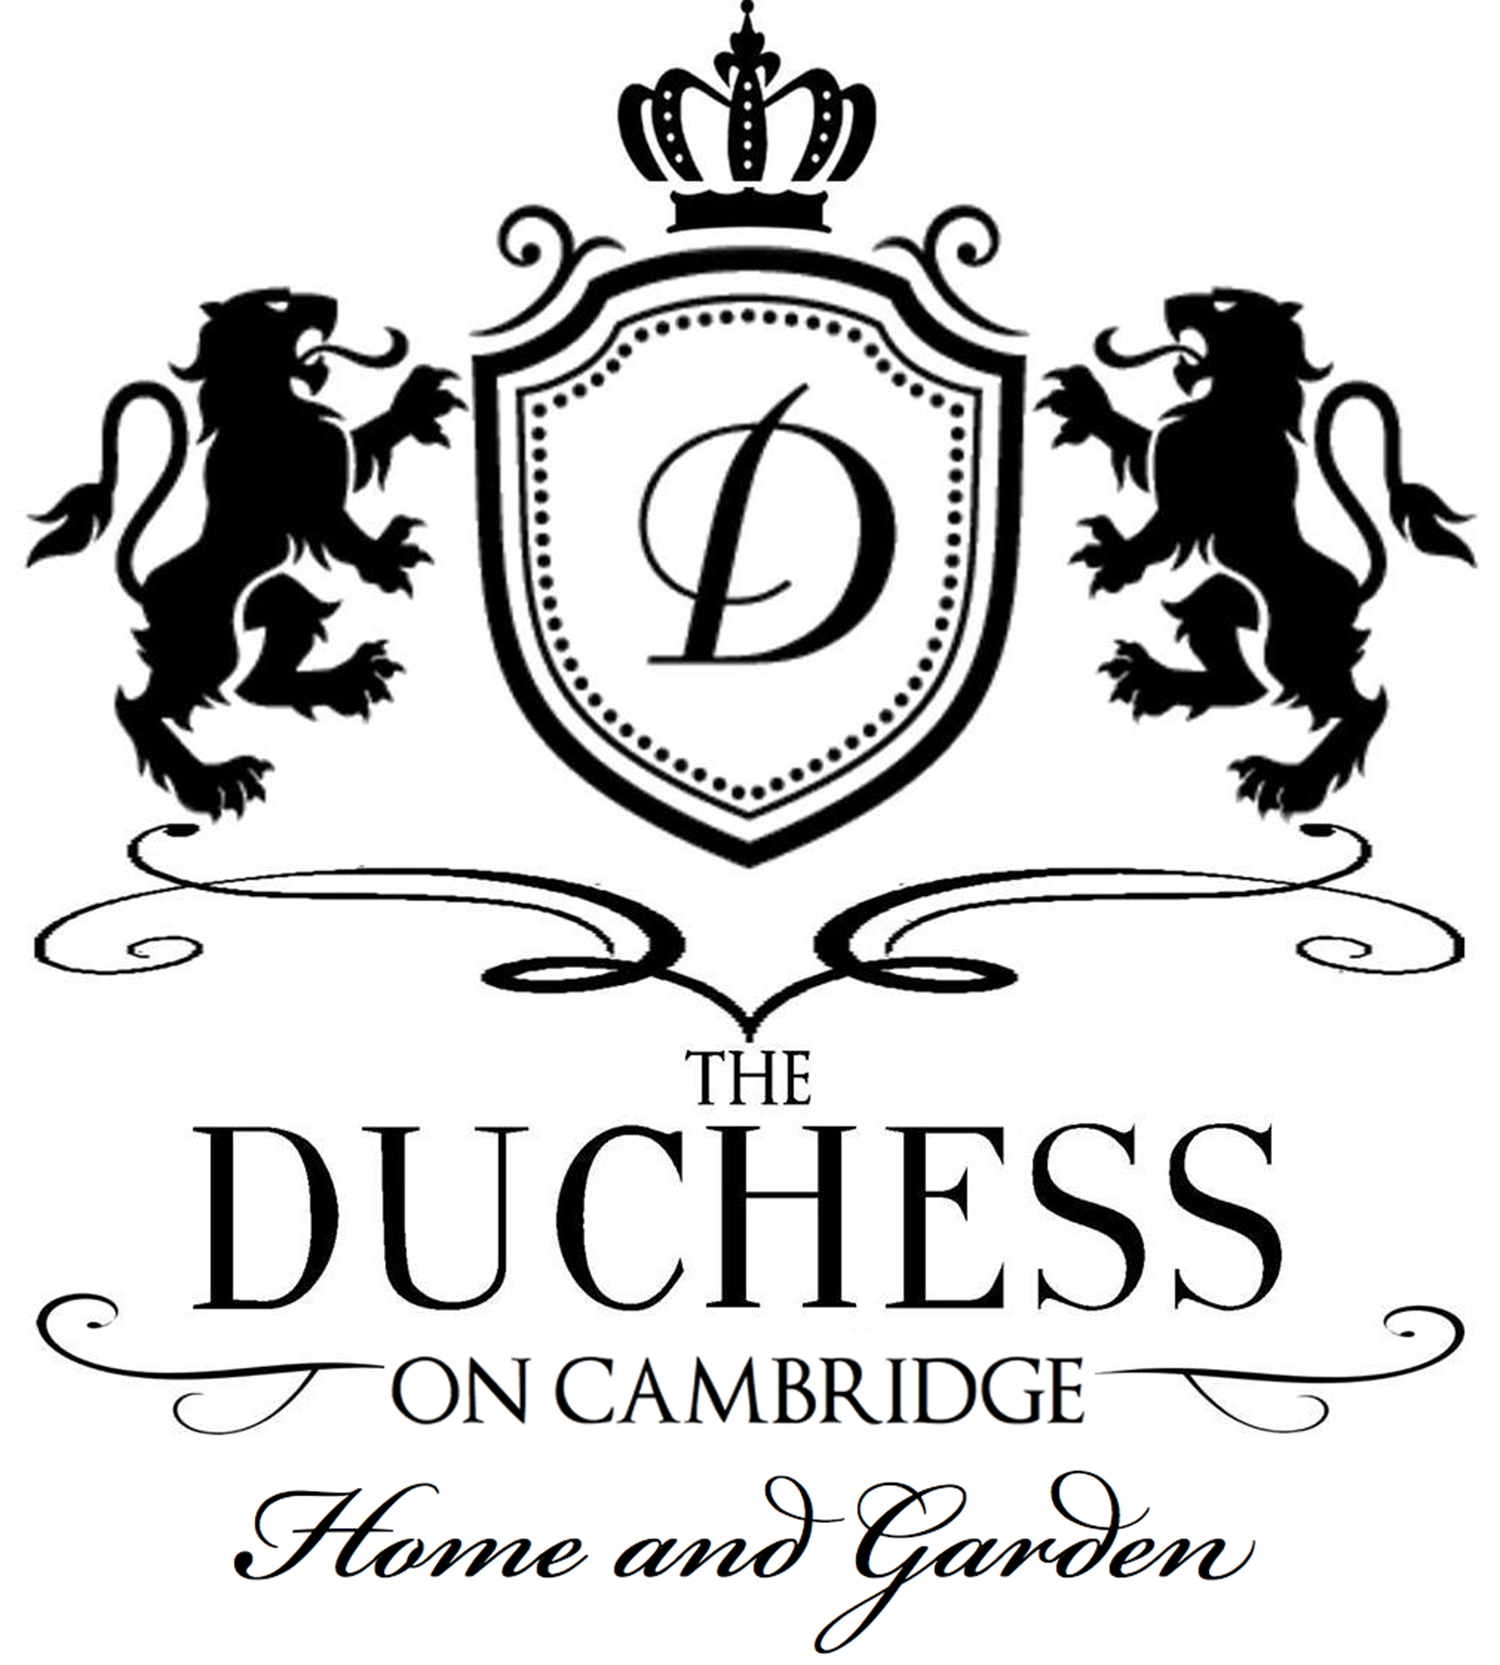 The Duchess on Cambridge